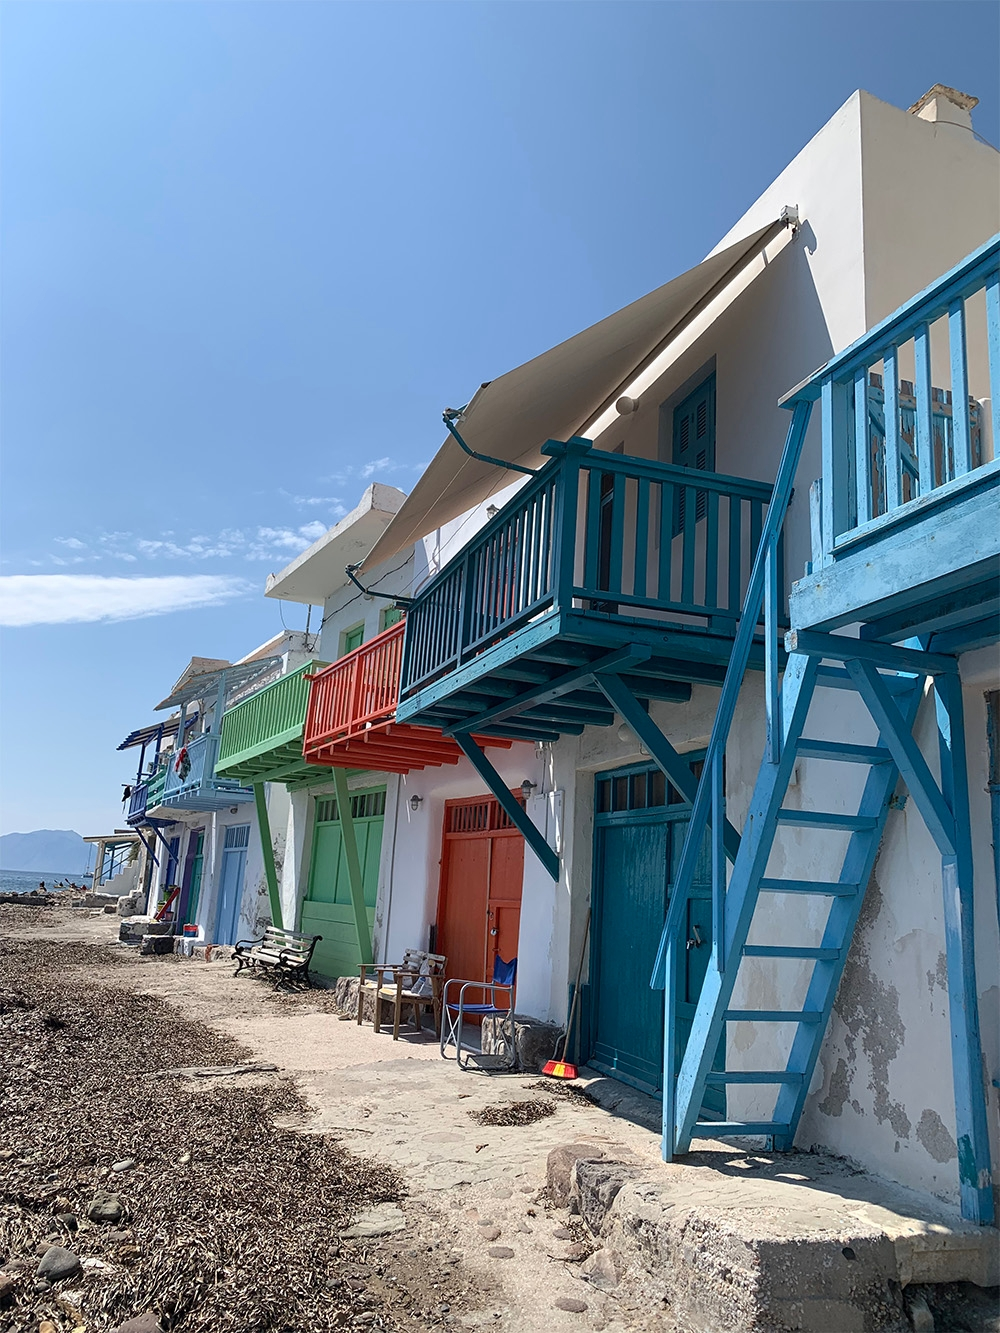 Colourful boat houses brighten the Milos streets.